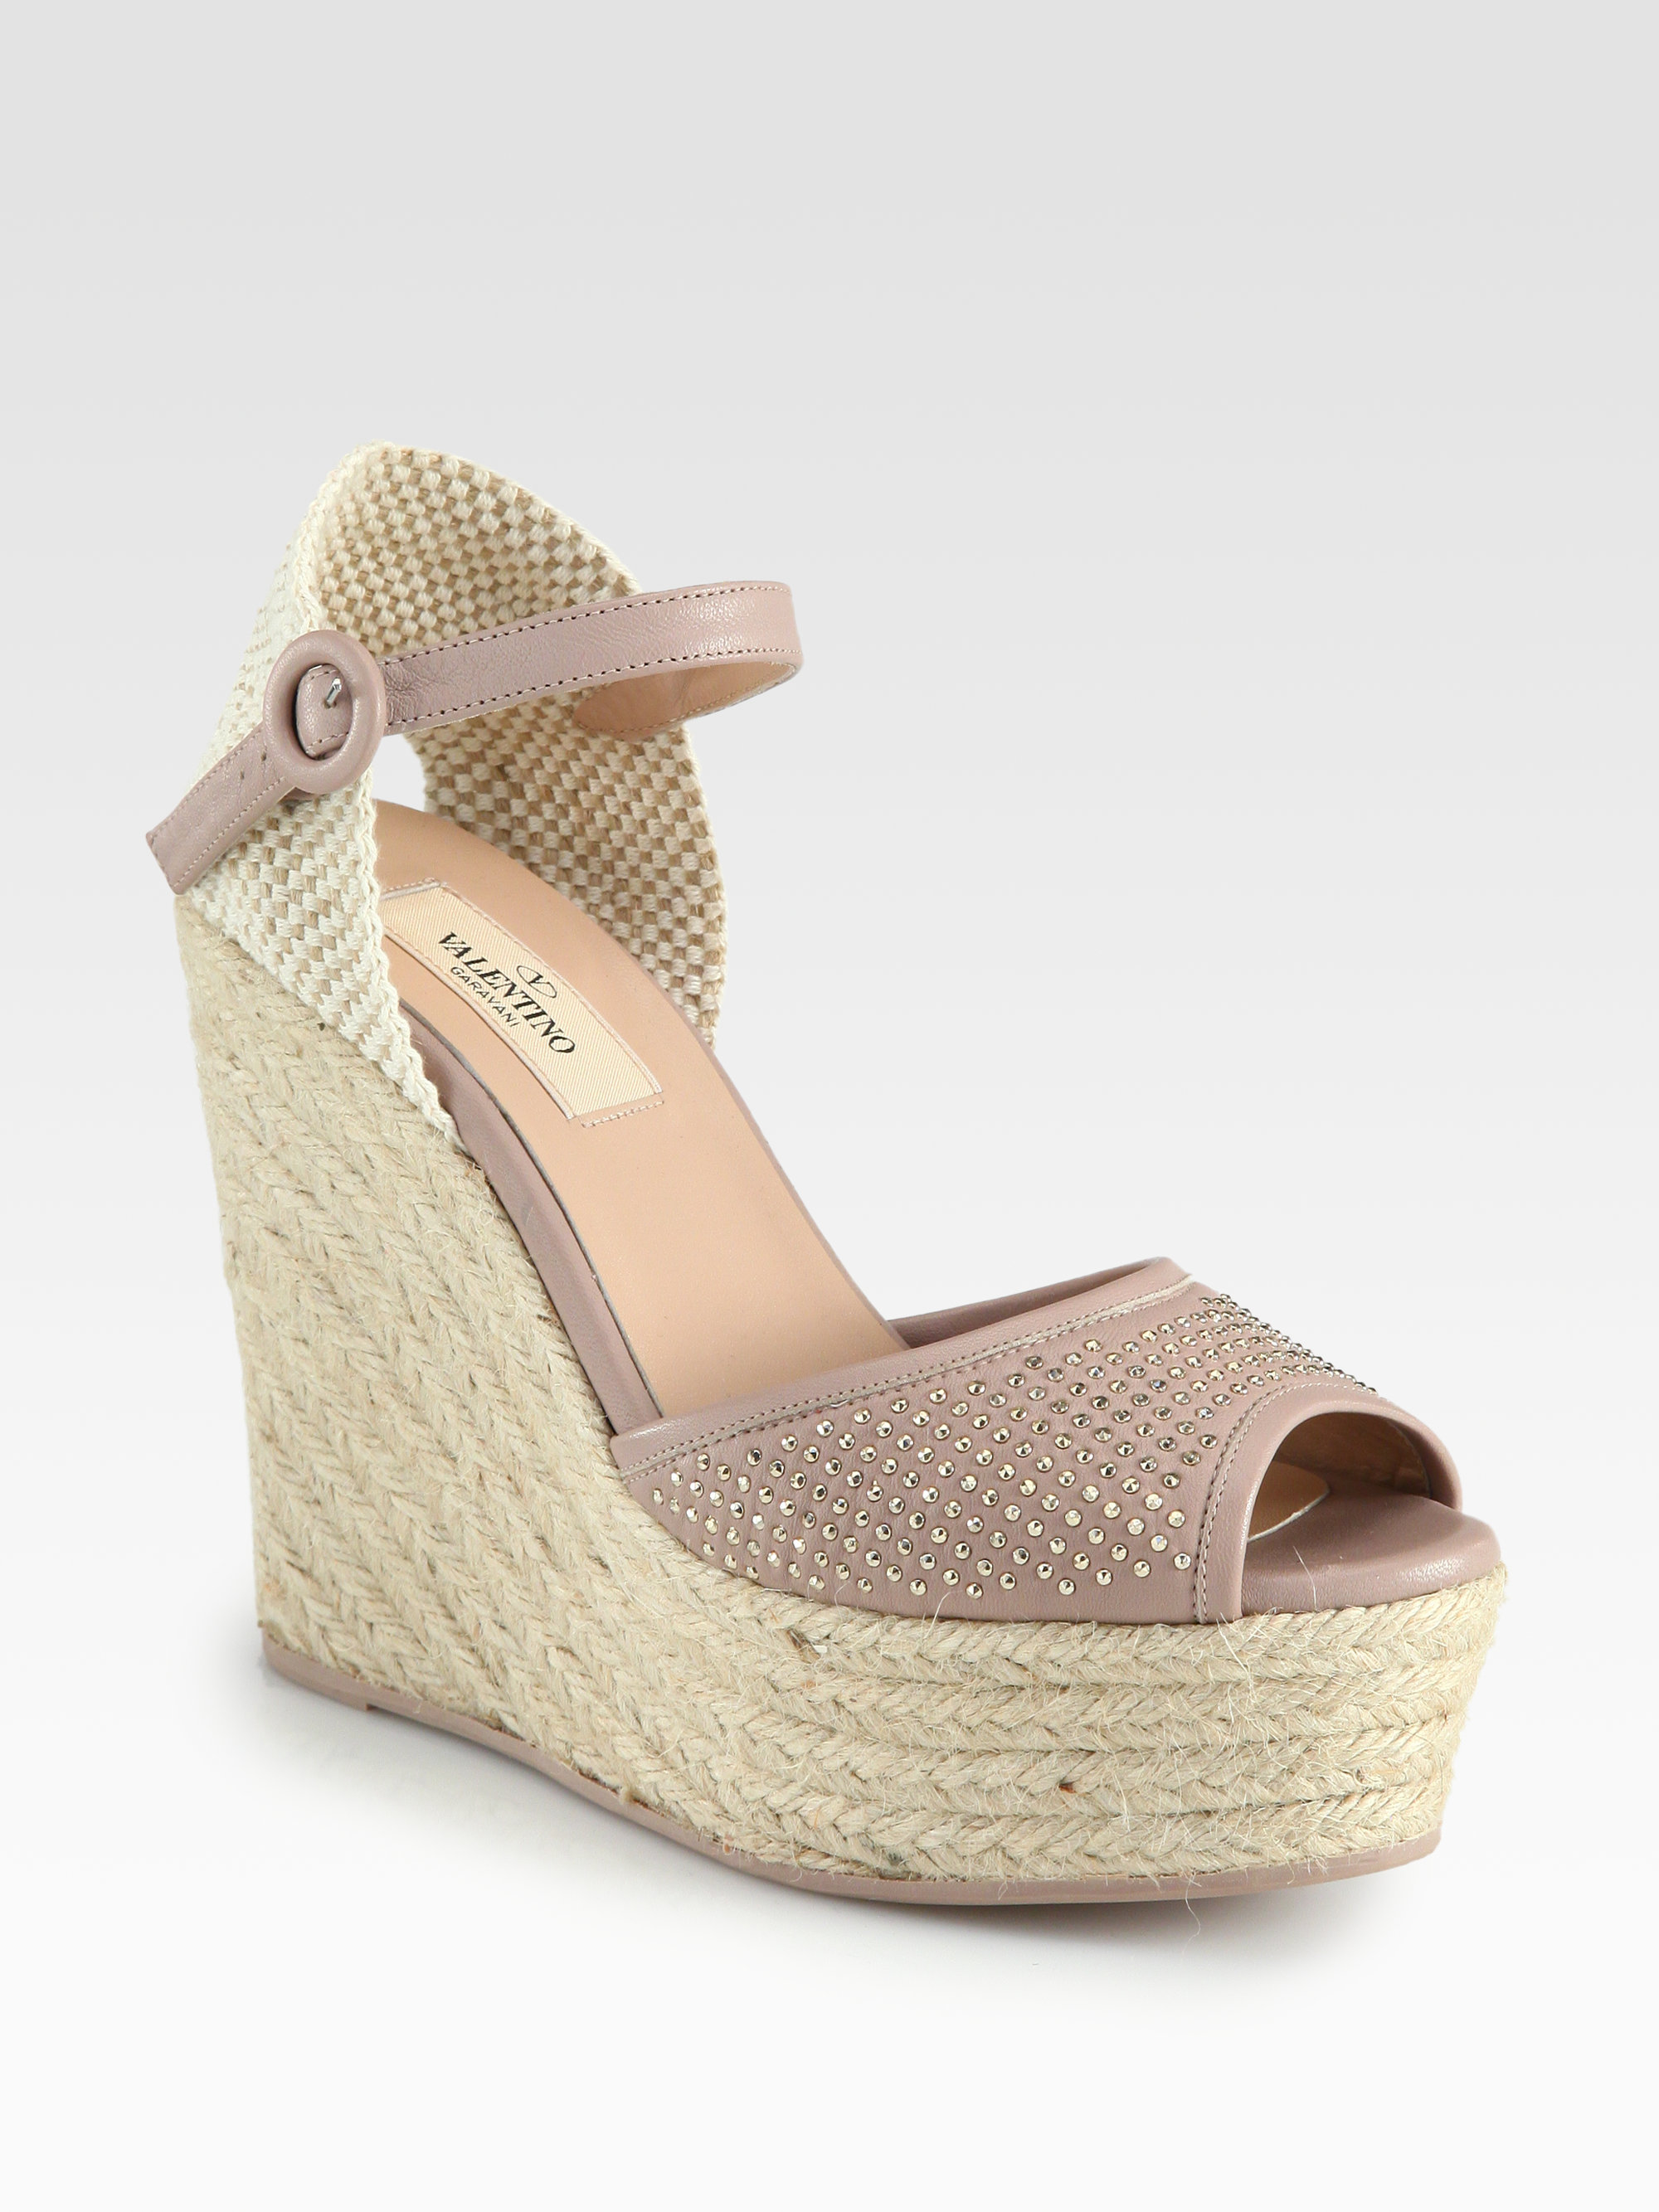 Valentino Studded Leather Espadrille Wedge Sandals In